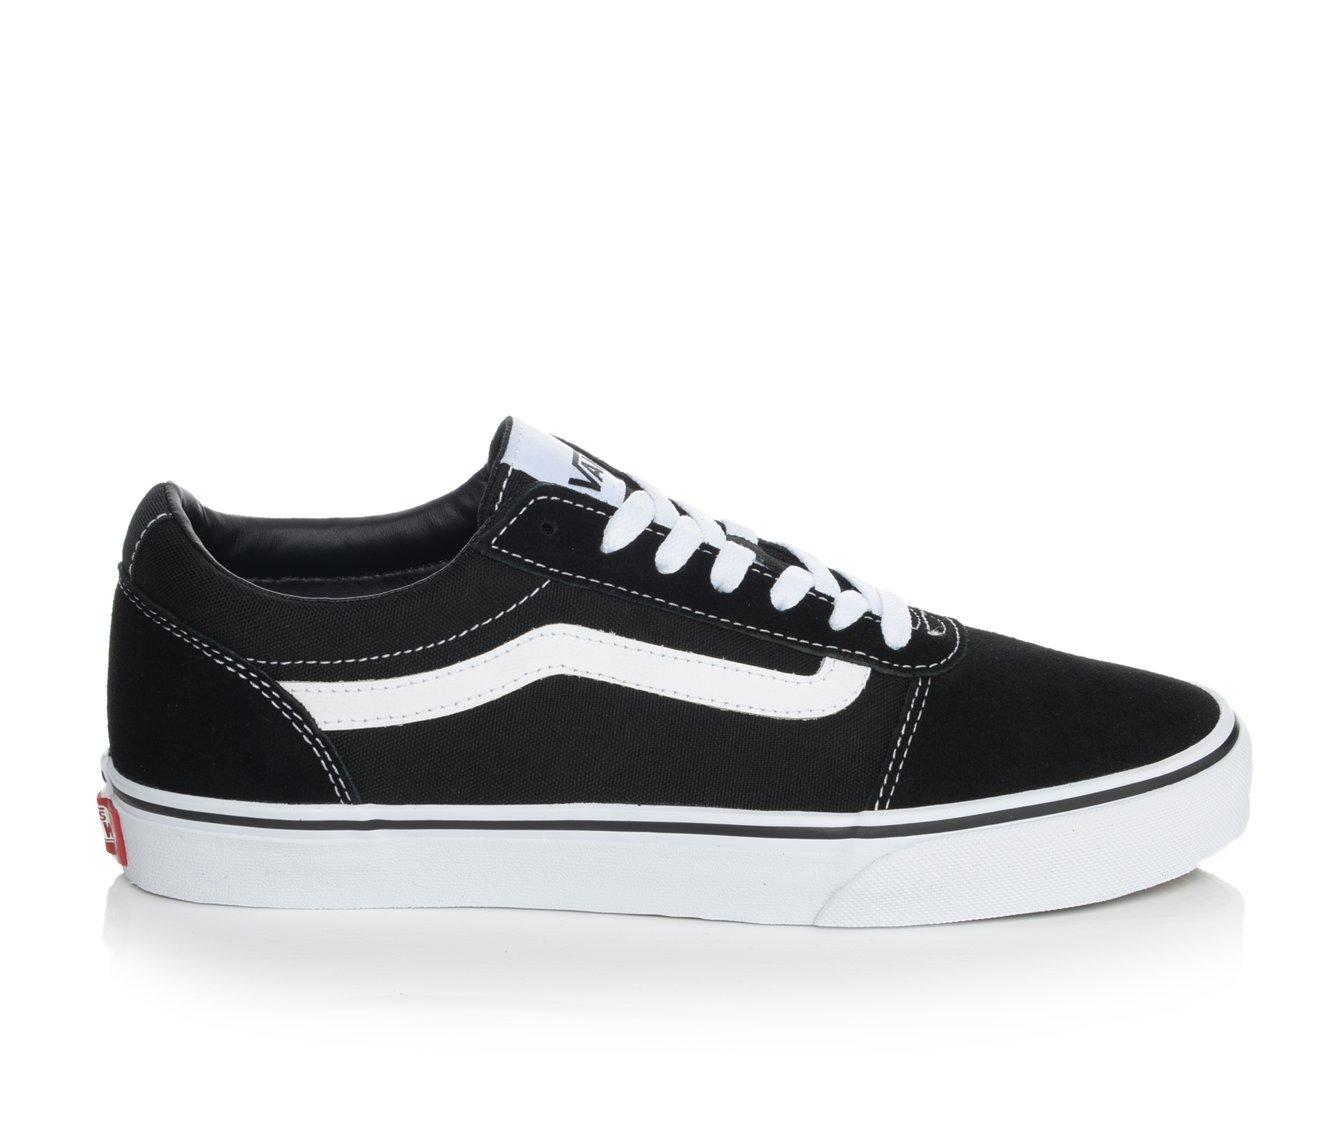 Vans Shoes Online Free Shipping